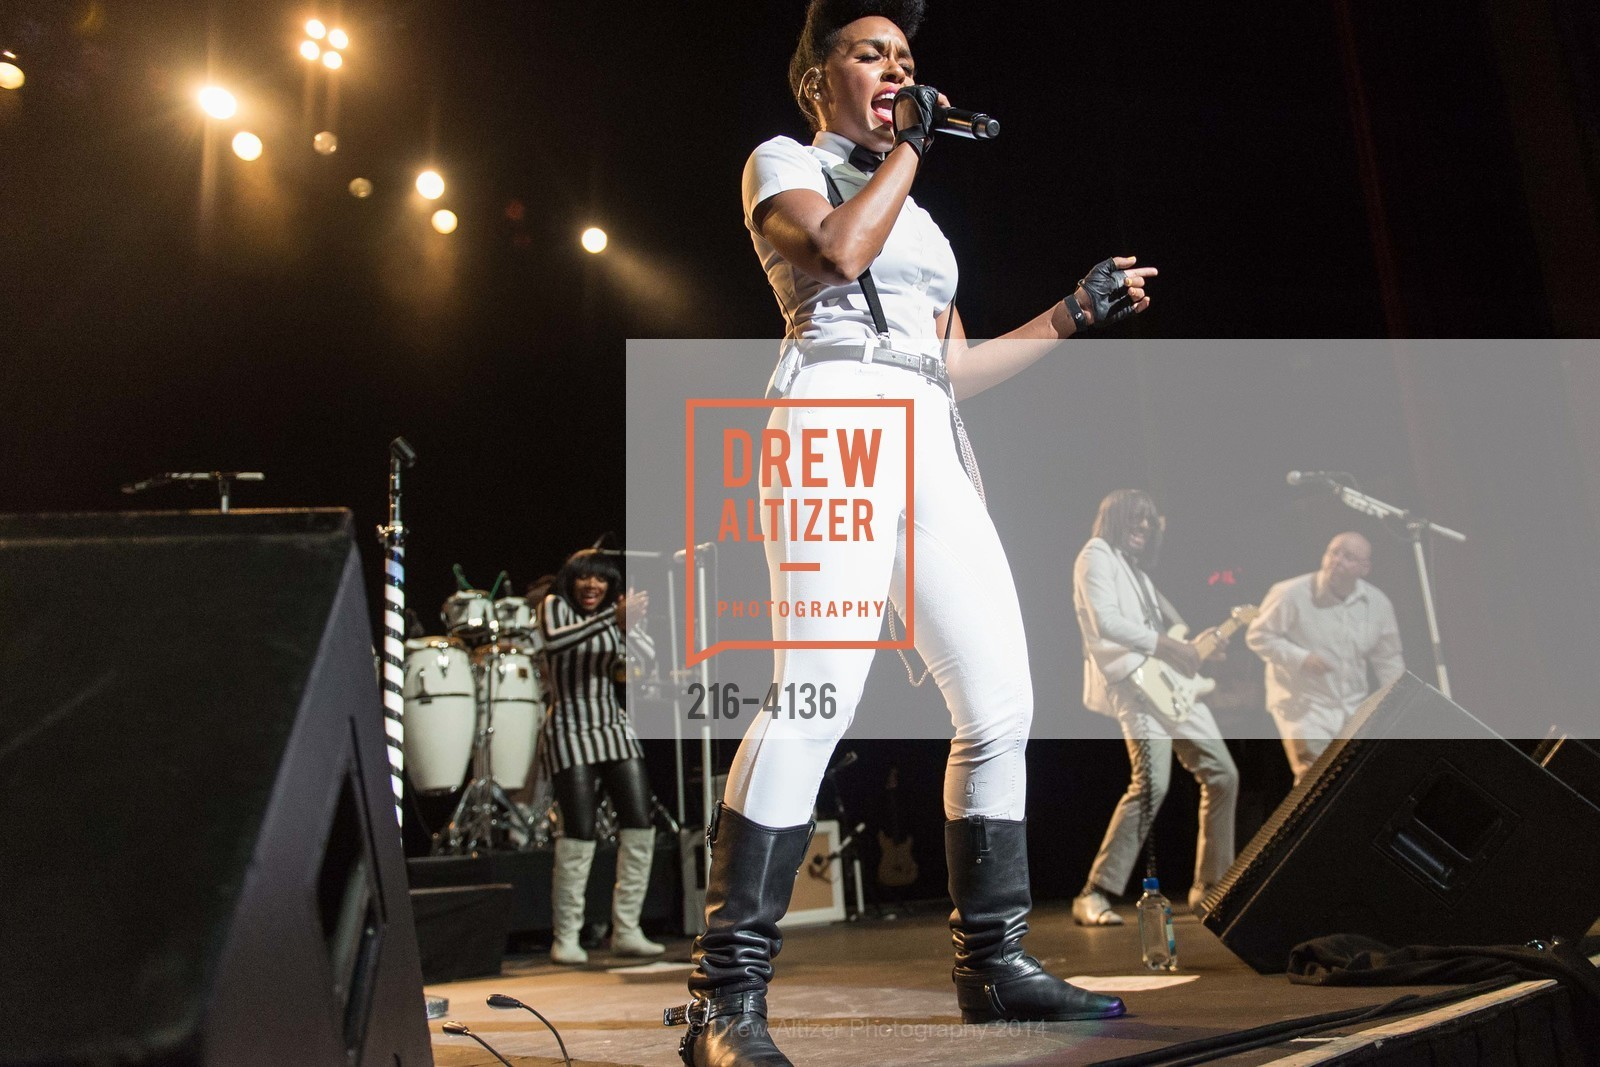 Performance By Janelle Monae, Photo #216-4136